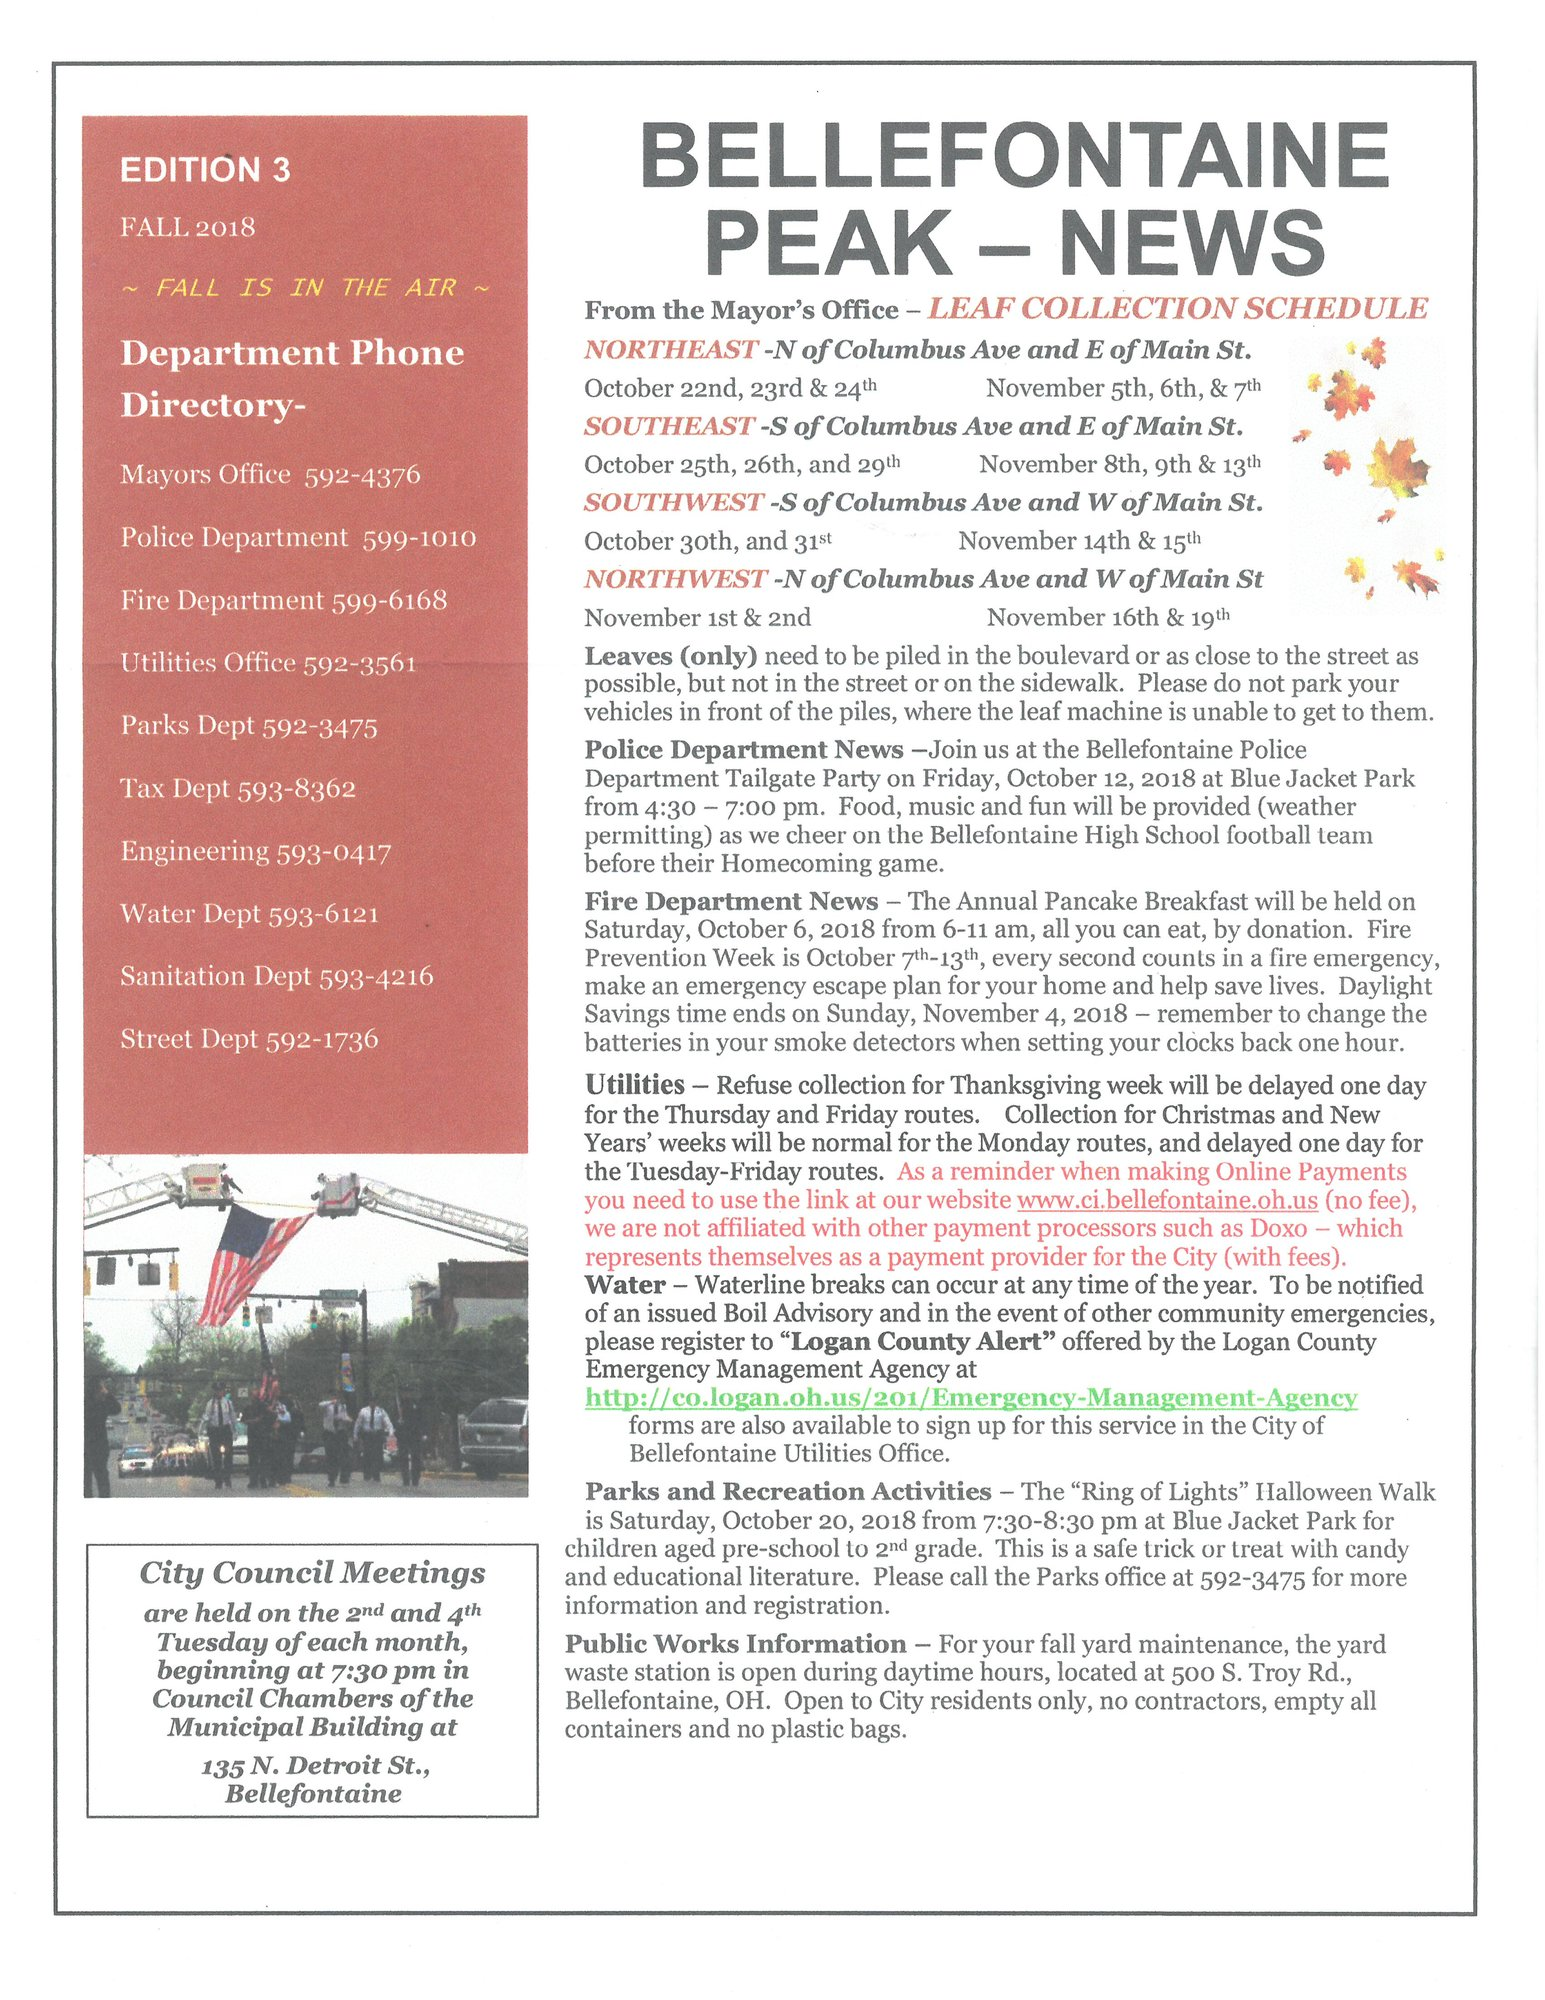 Bellefontaine Peak News